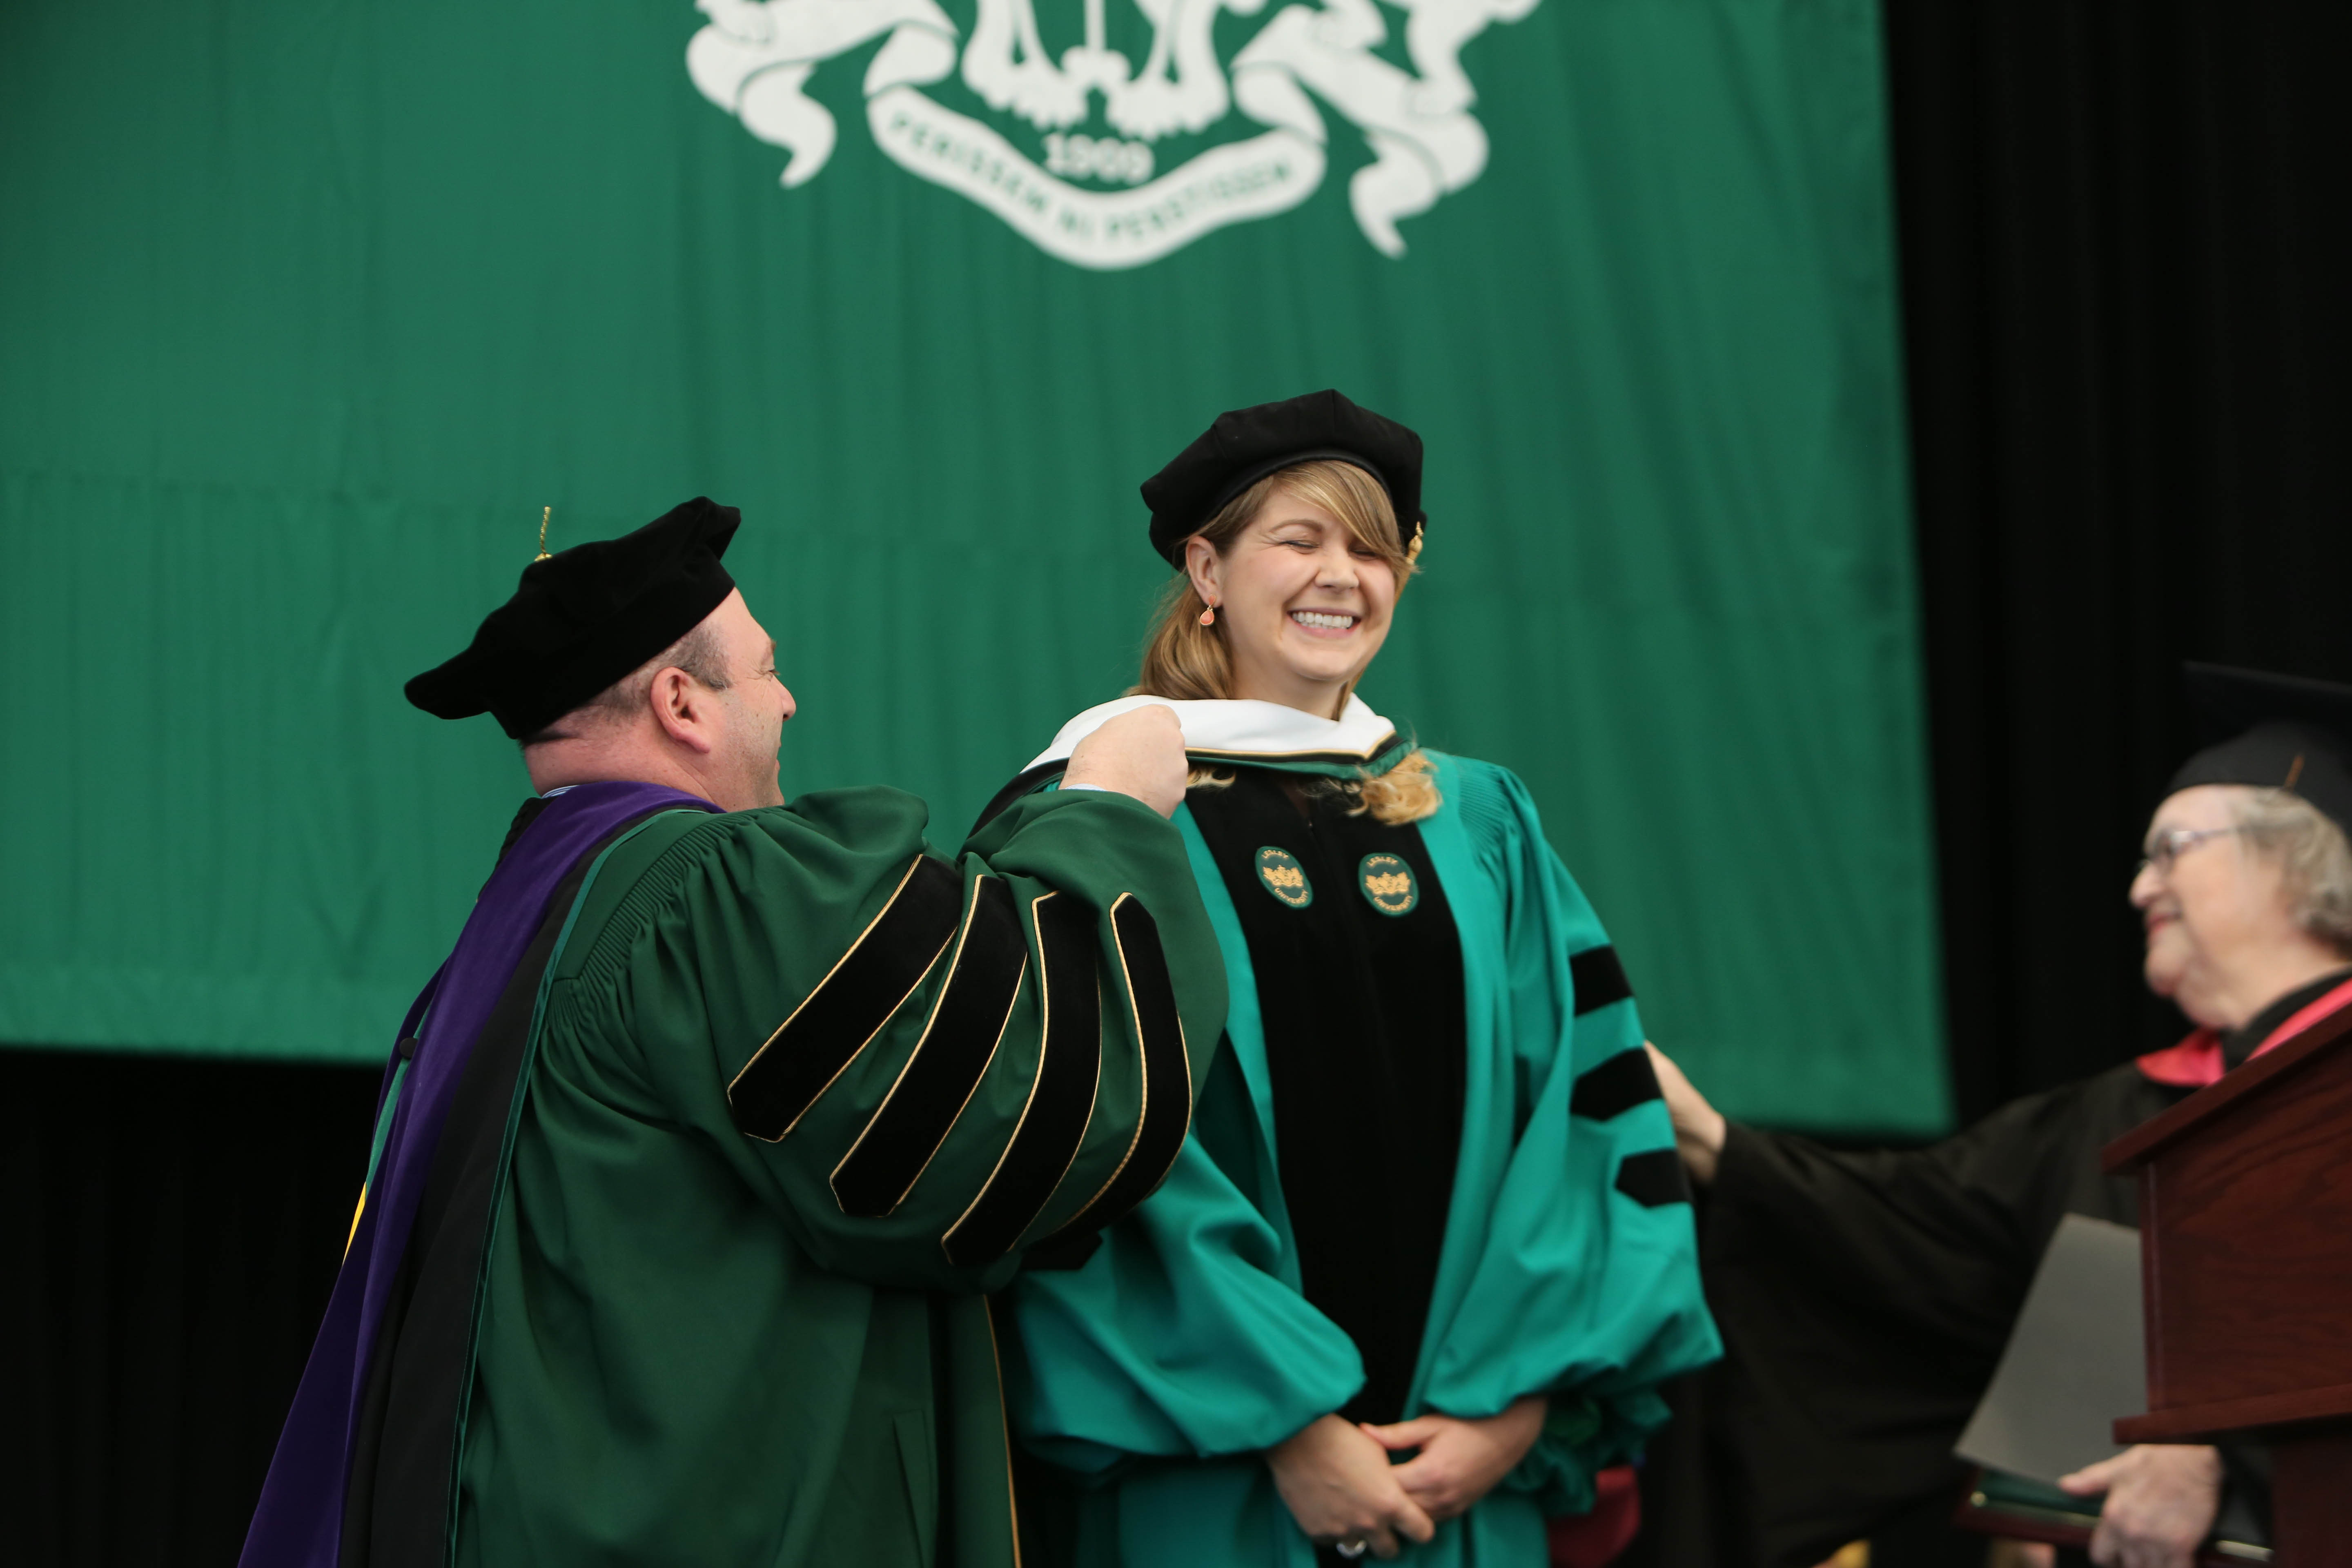 National Teacher of the Year Sydney Chaffee receives her honorary degree at commencement.